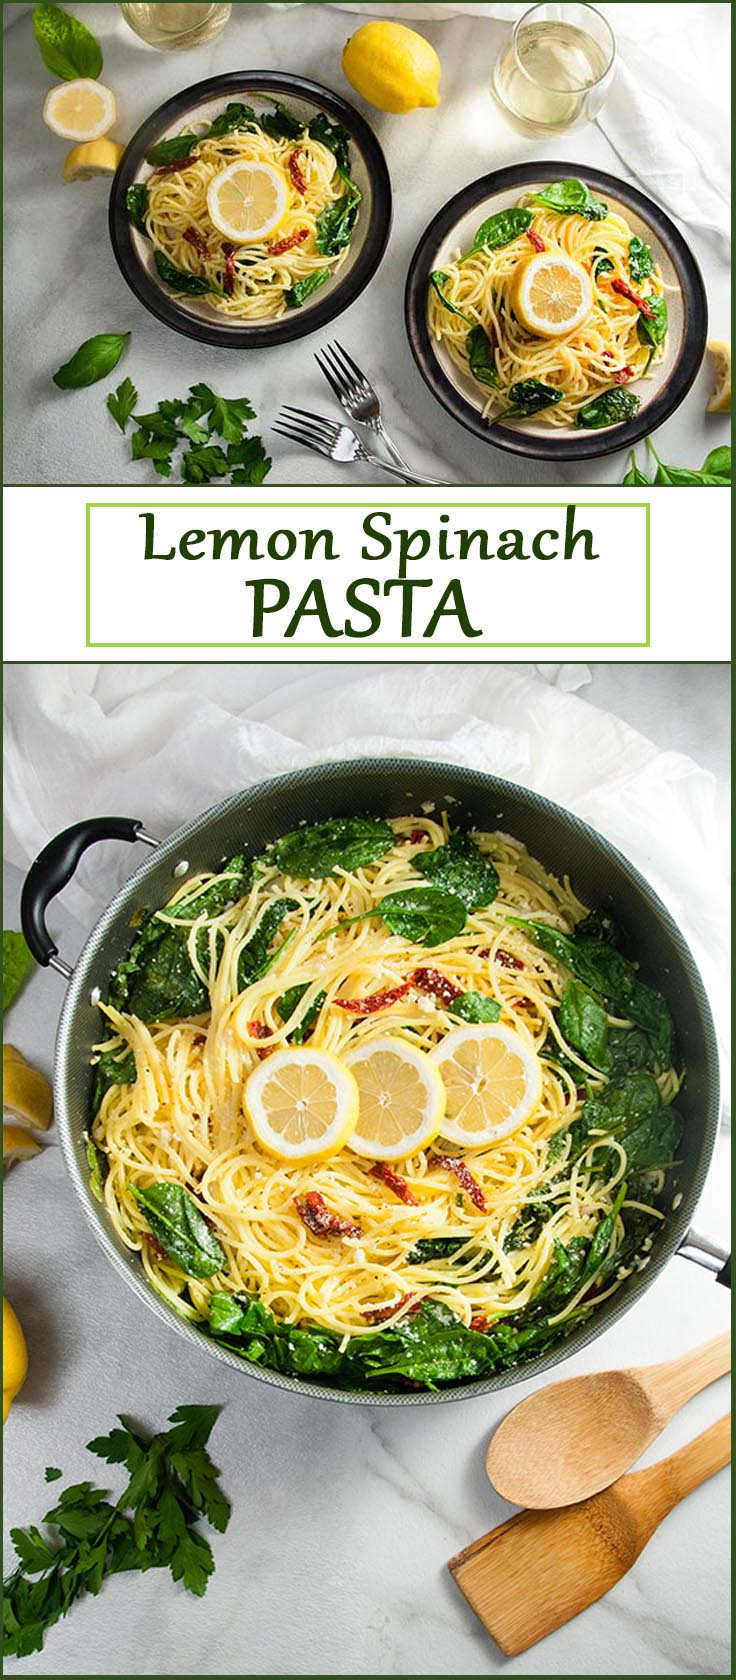 Easy Lemon Spinach Pasta with Sun Dried Tomatoes from www.SeasonedSprinkles.com